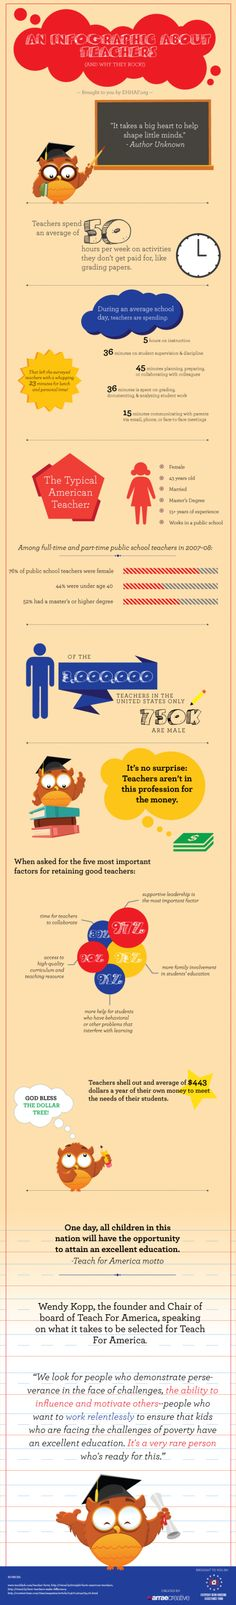 Something positive - an #infographic about what teacher rock!